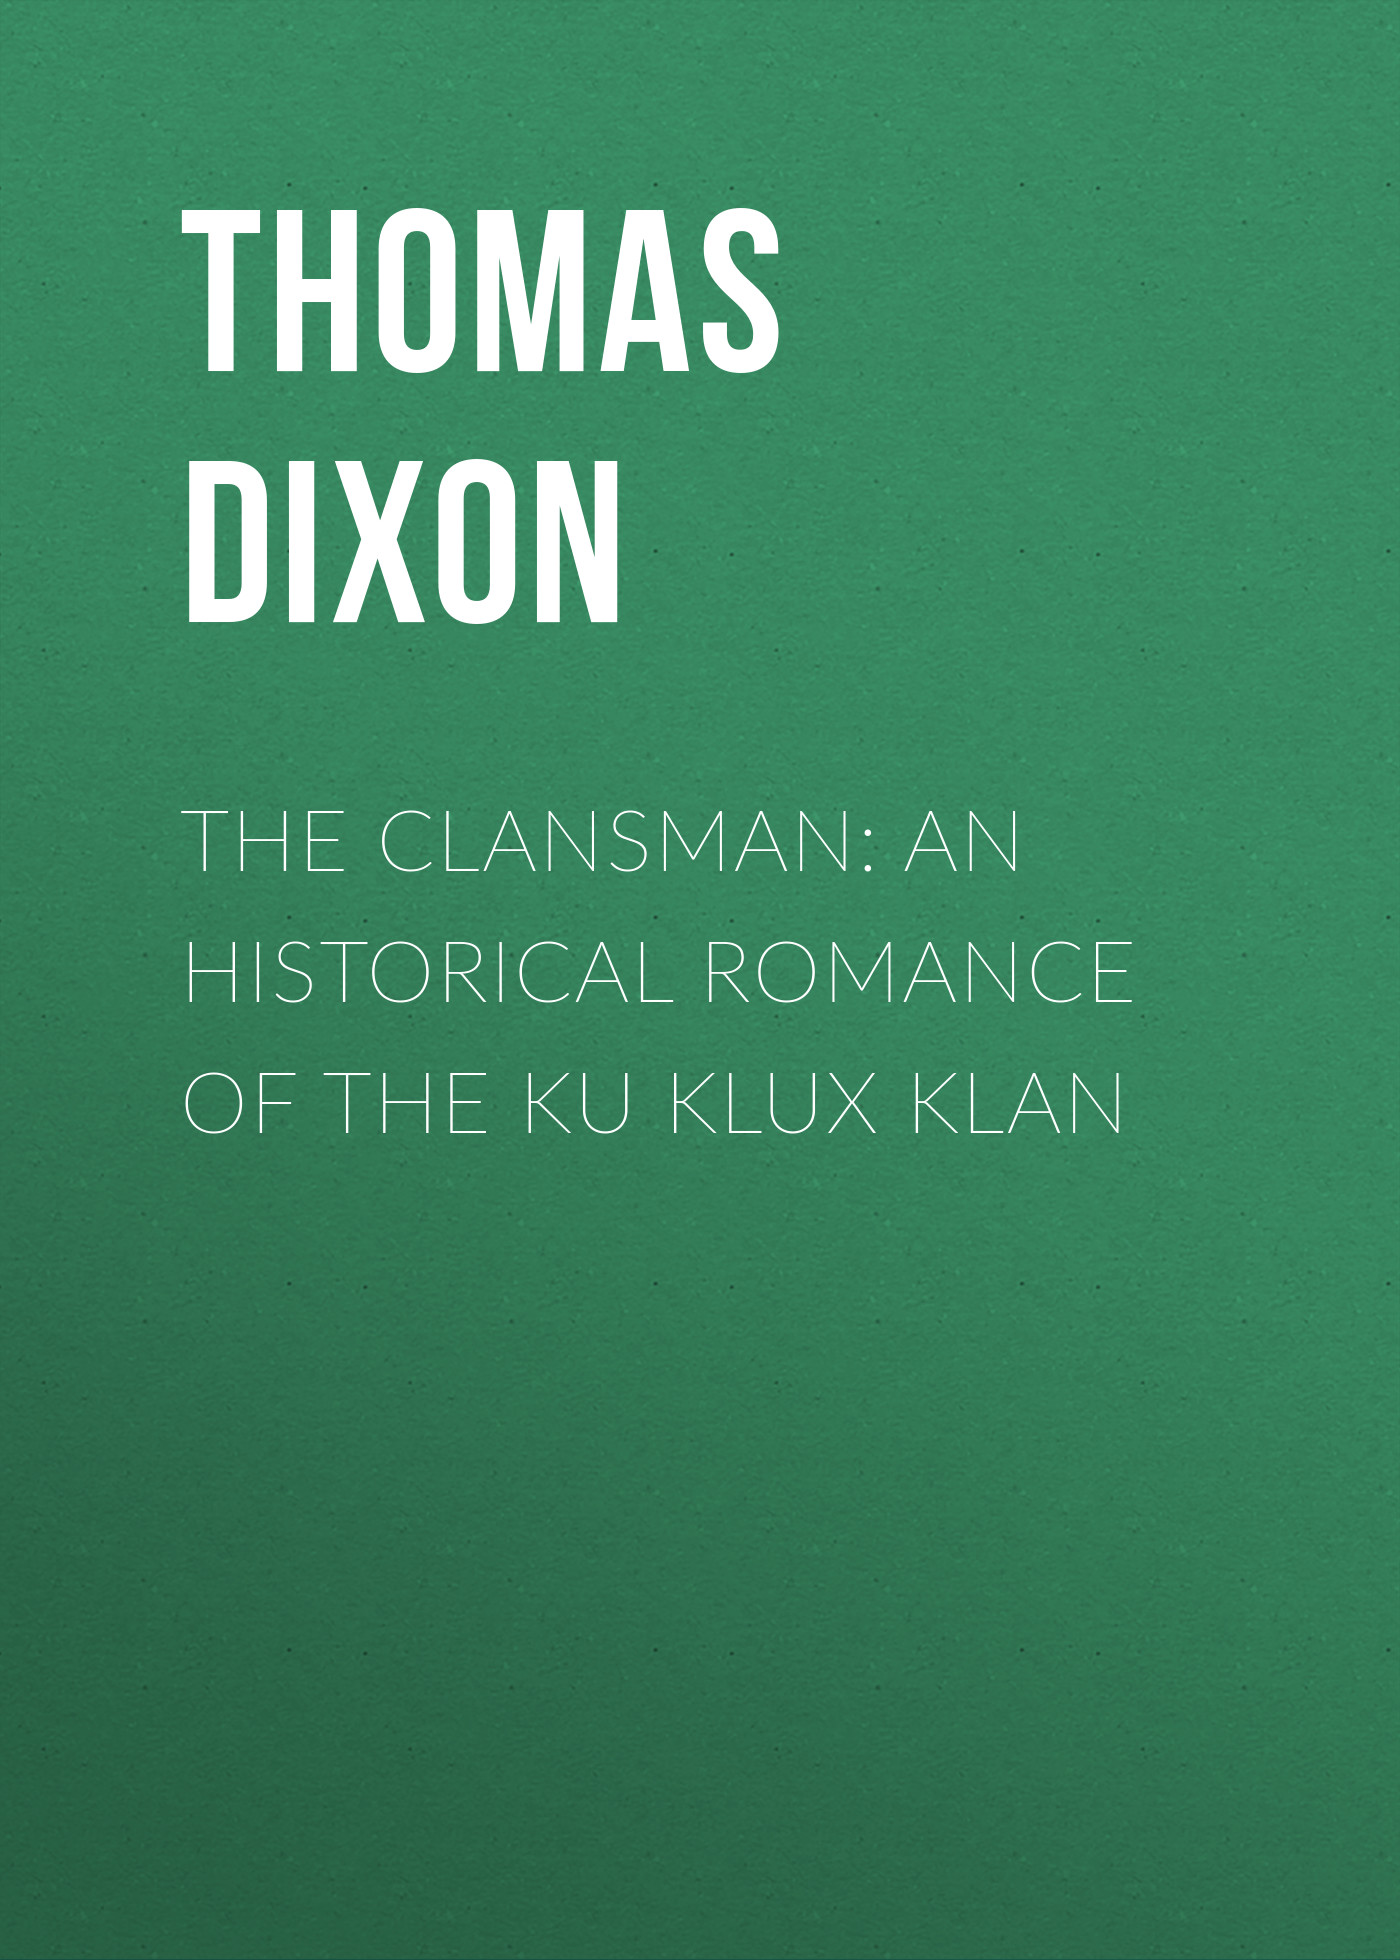 все цены на Thomas Dixon The Clansman: An Historical Romance of the Ku Klux Klan